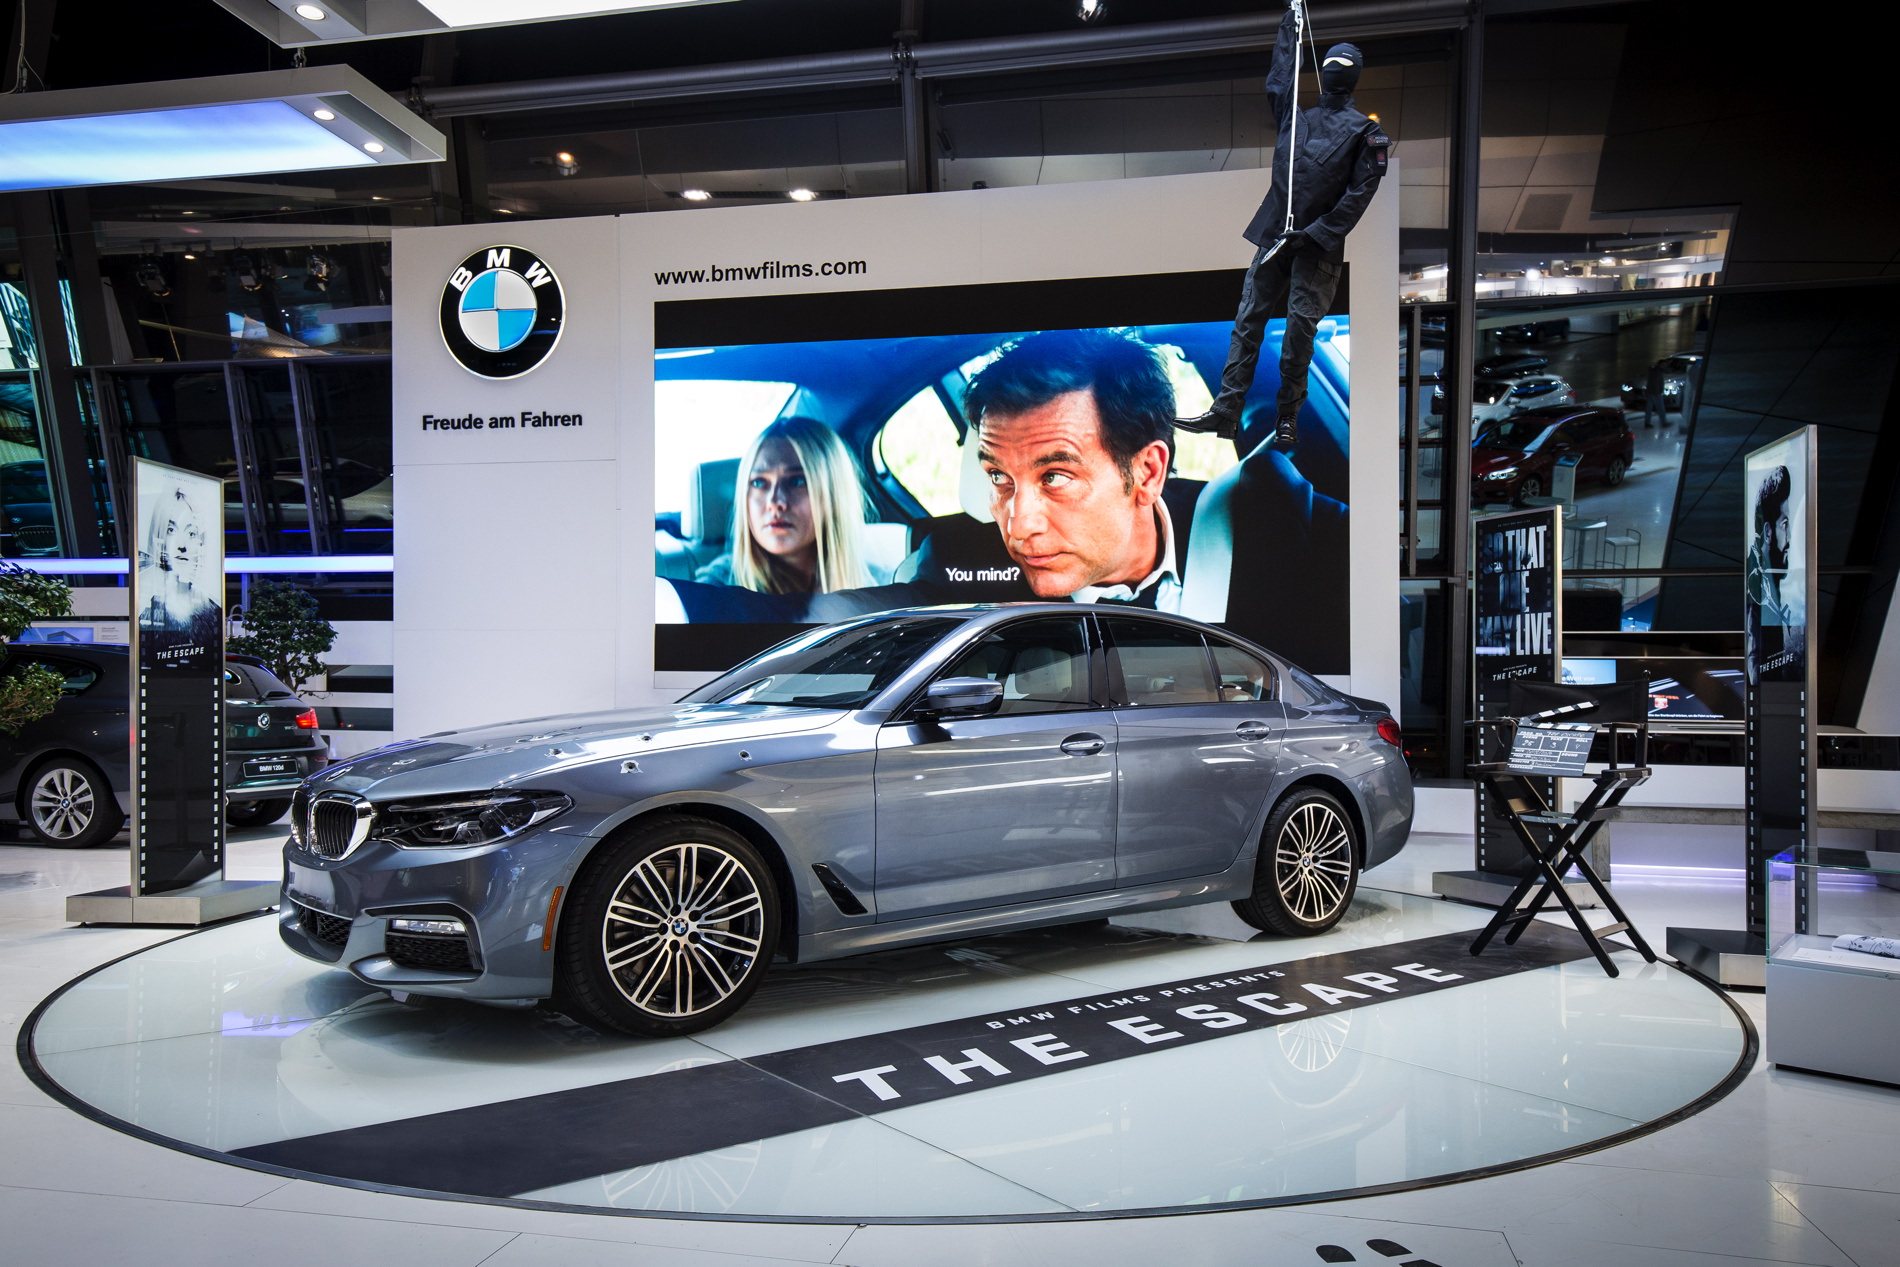 A Special Display On Bmw Films In Now Available At Bmw Welt